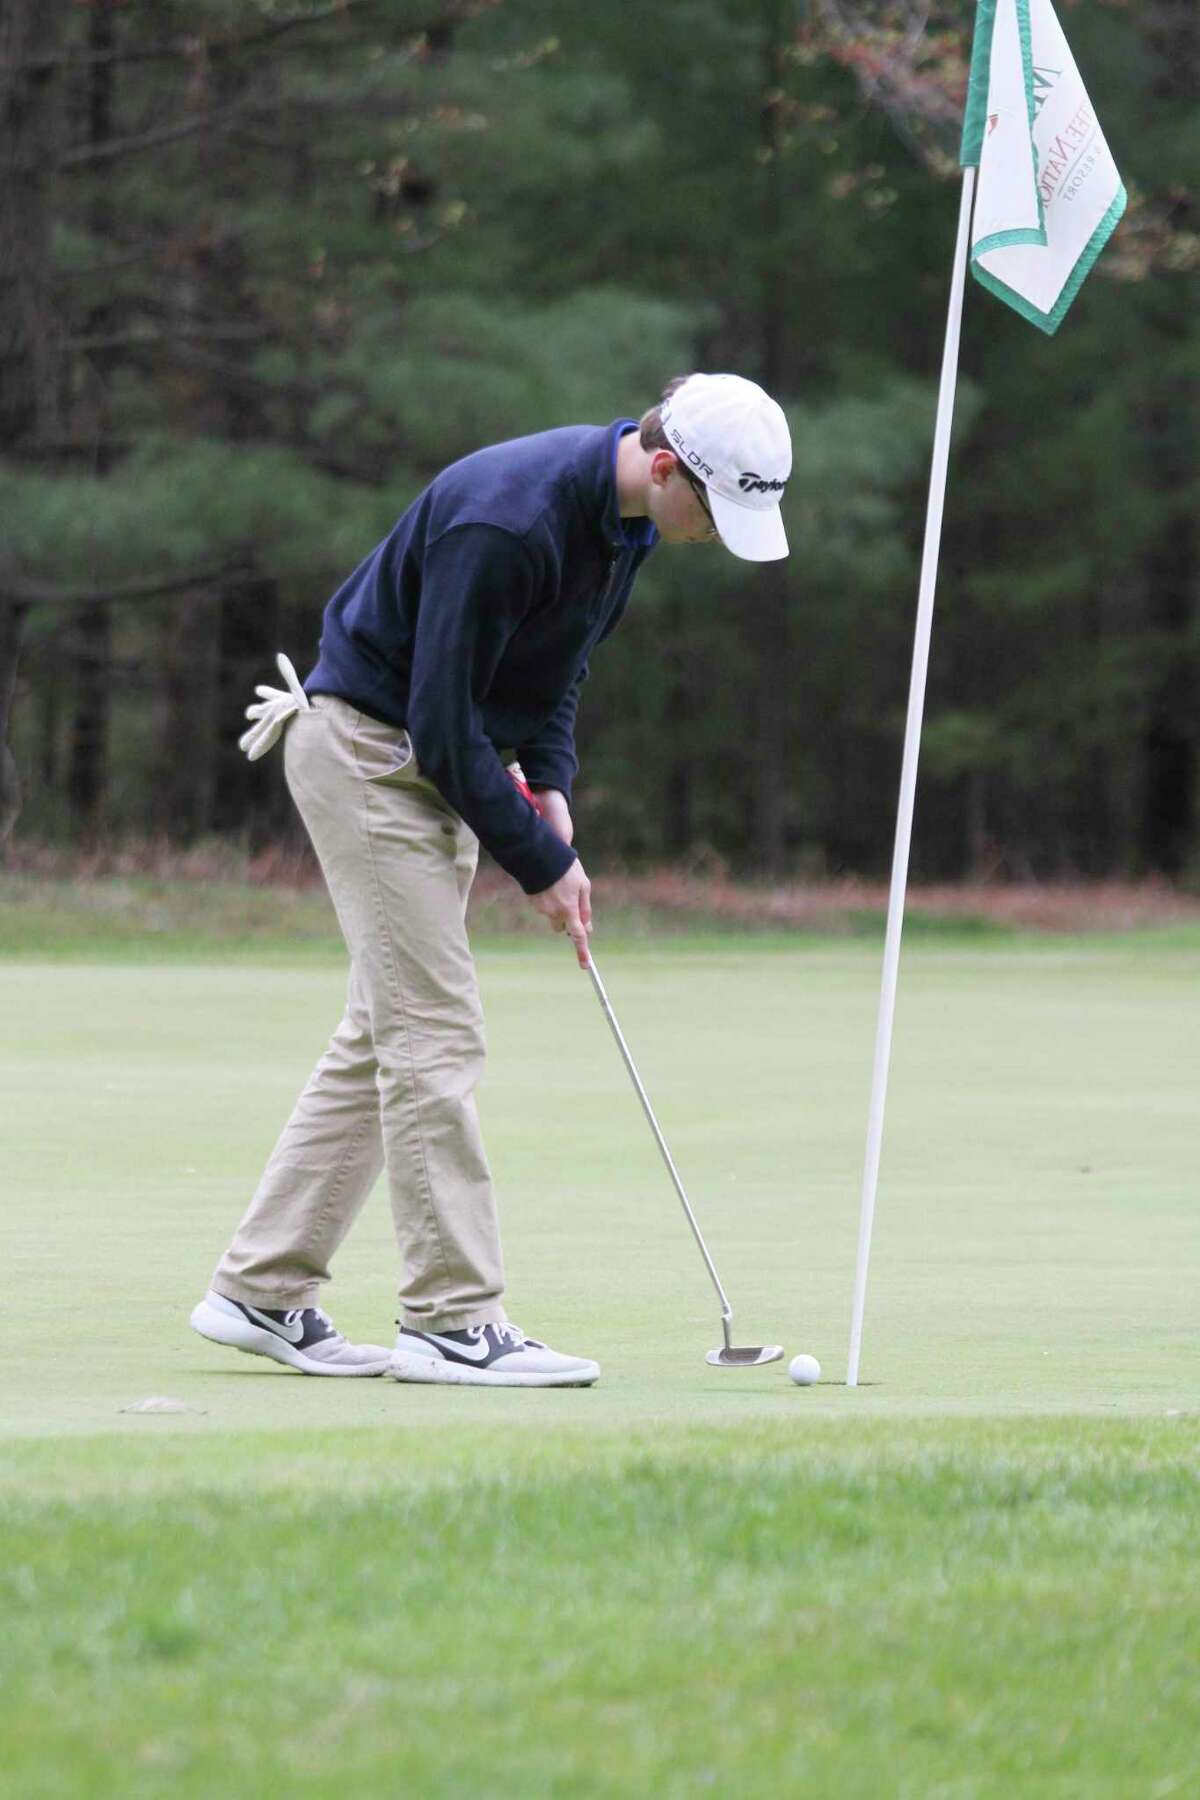 Brendan McComb and the Manistee Catholic Central golf team won the West Michigan D League championship Monday at Crystal Lake Golf Club. (News Advocate file photo)